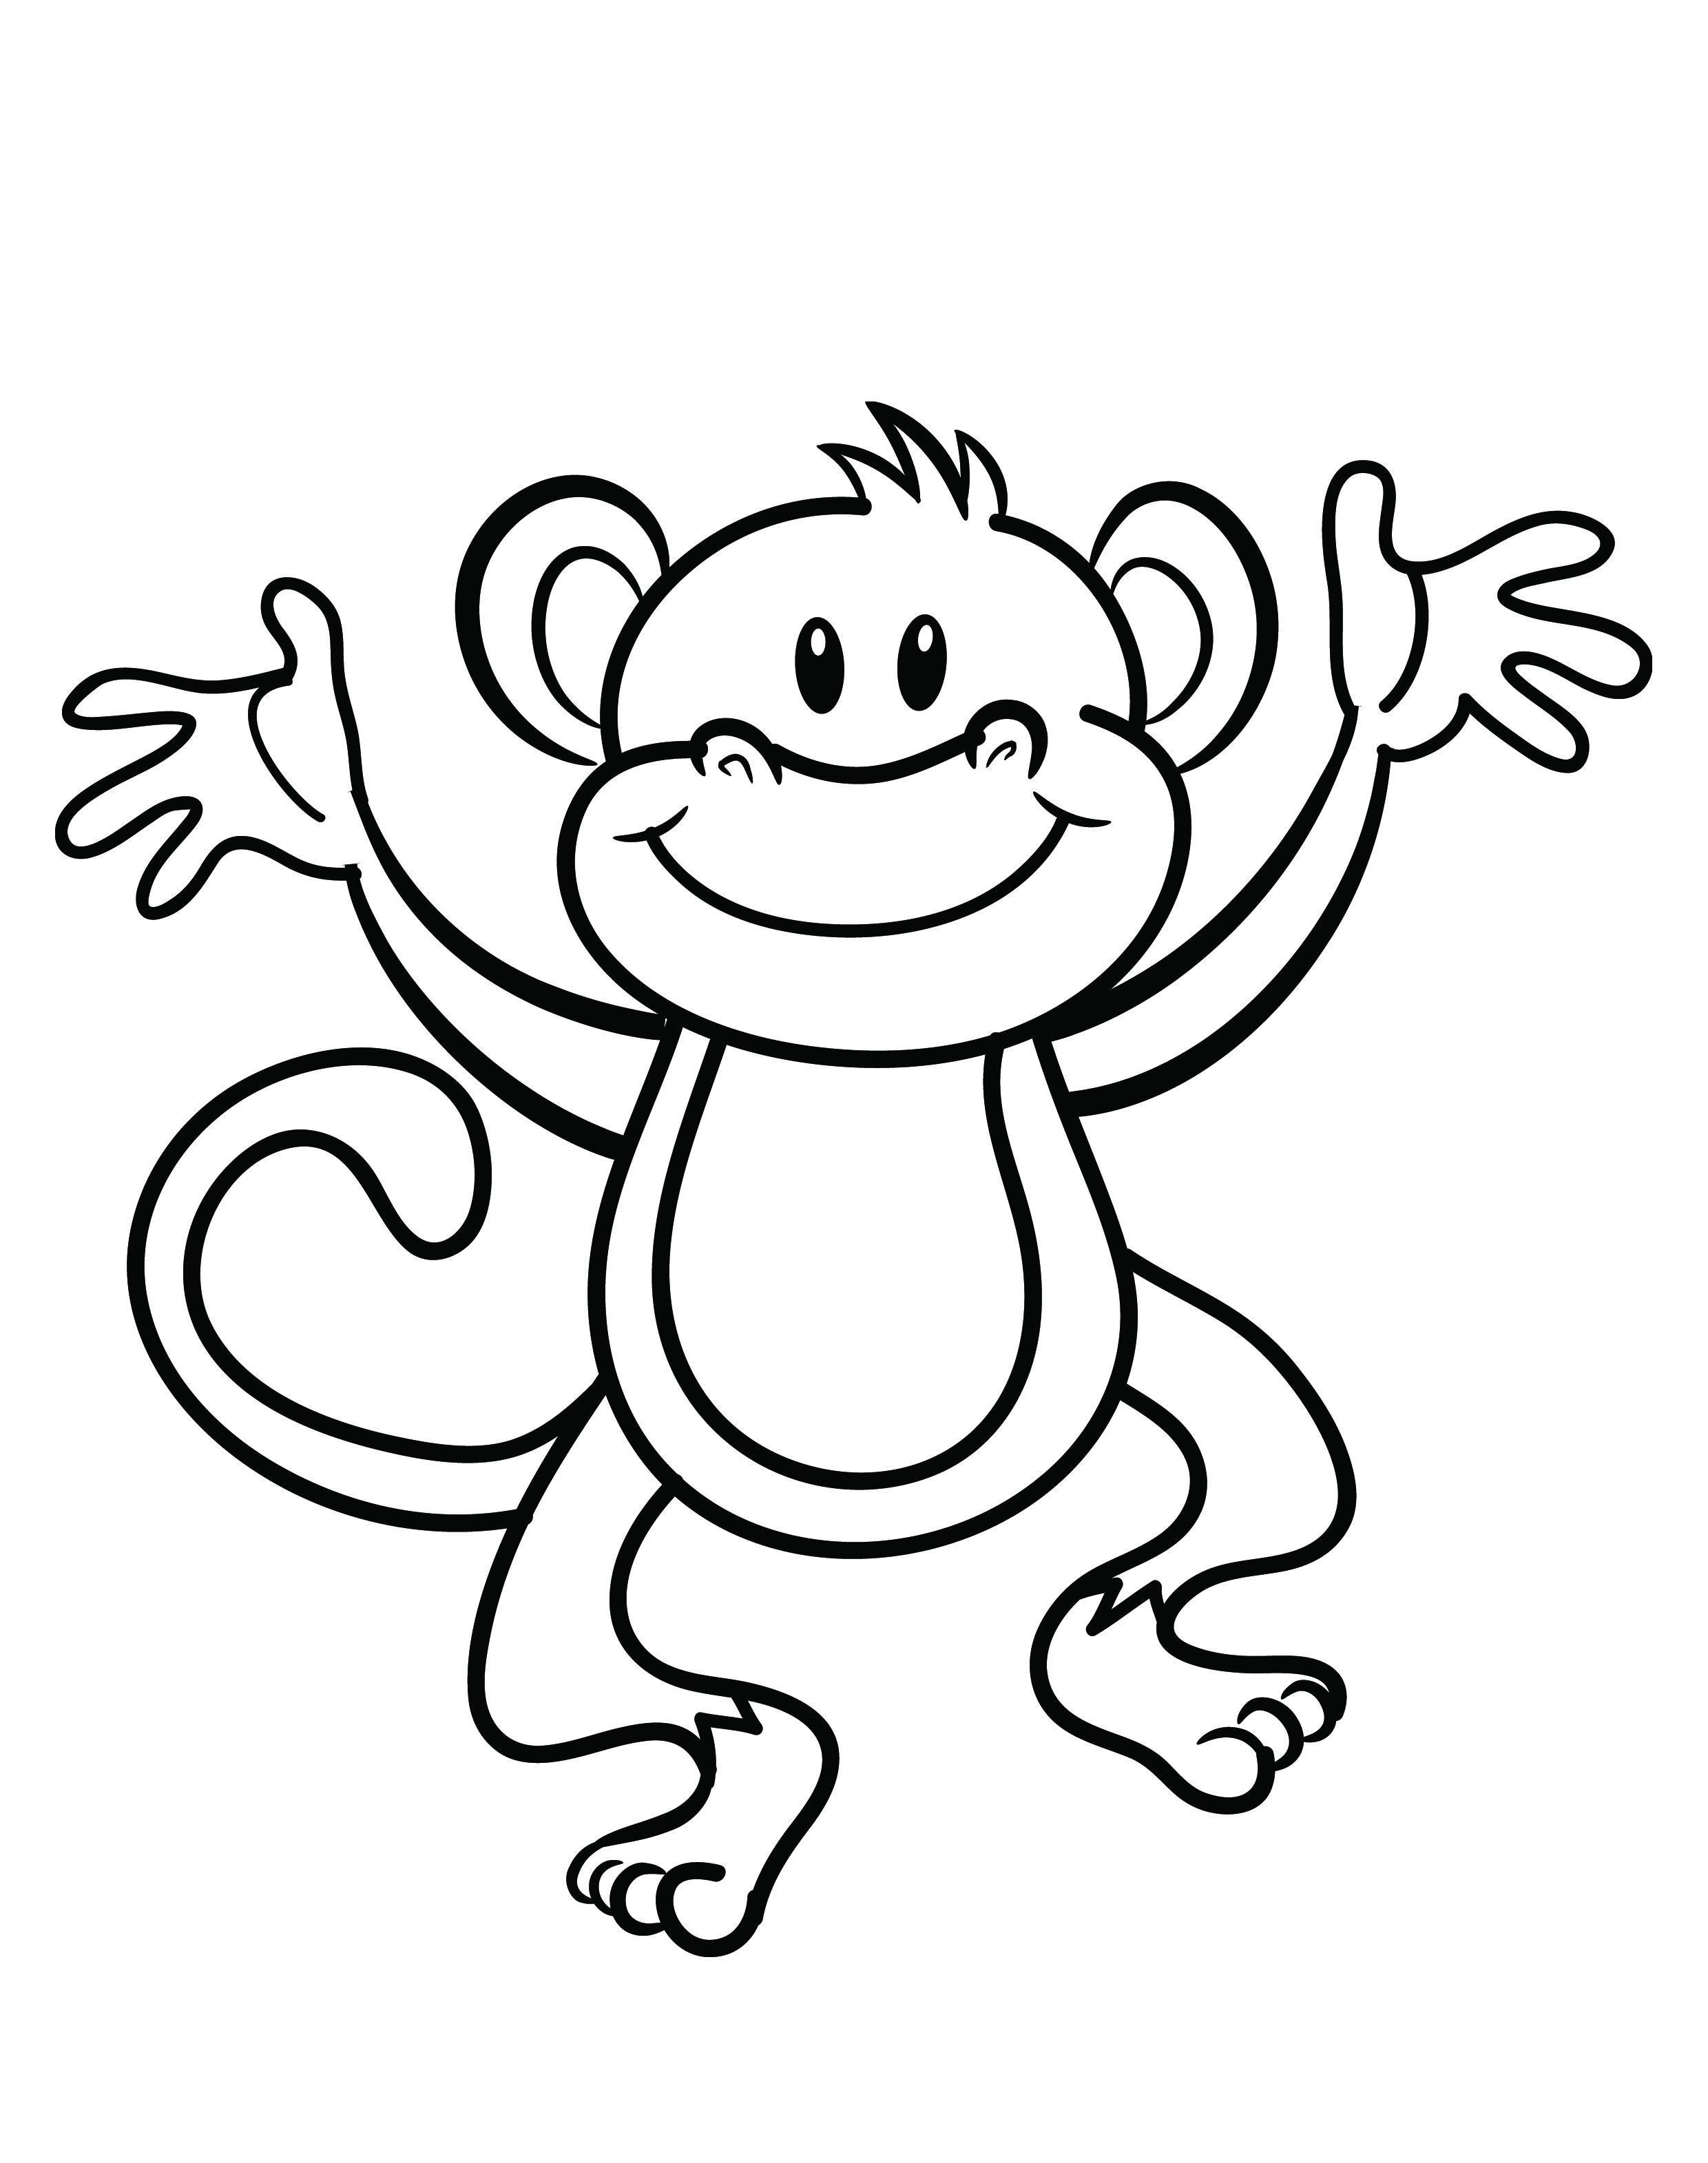 Monkey coloring for grown ups. Pages free printable st